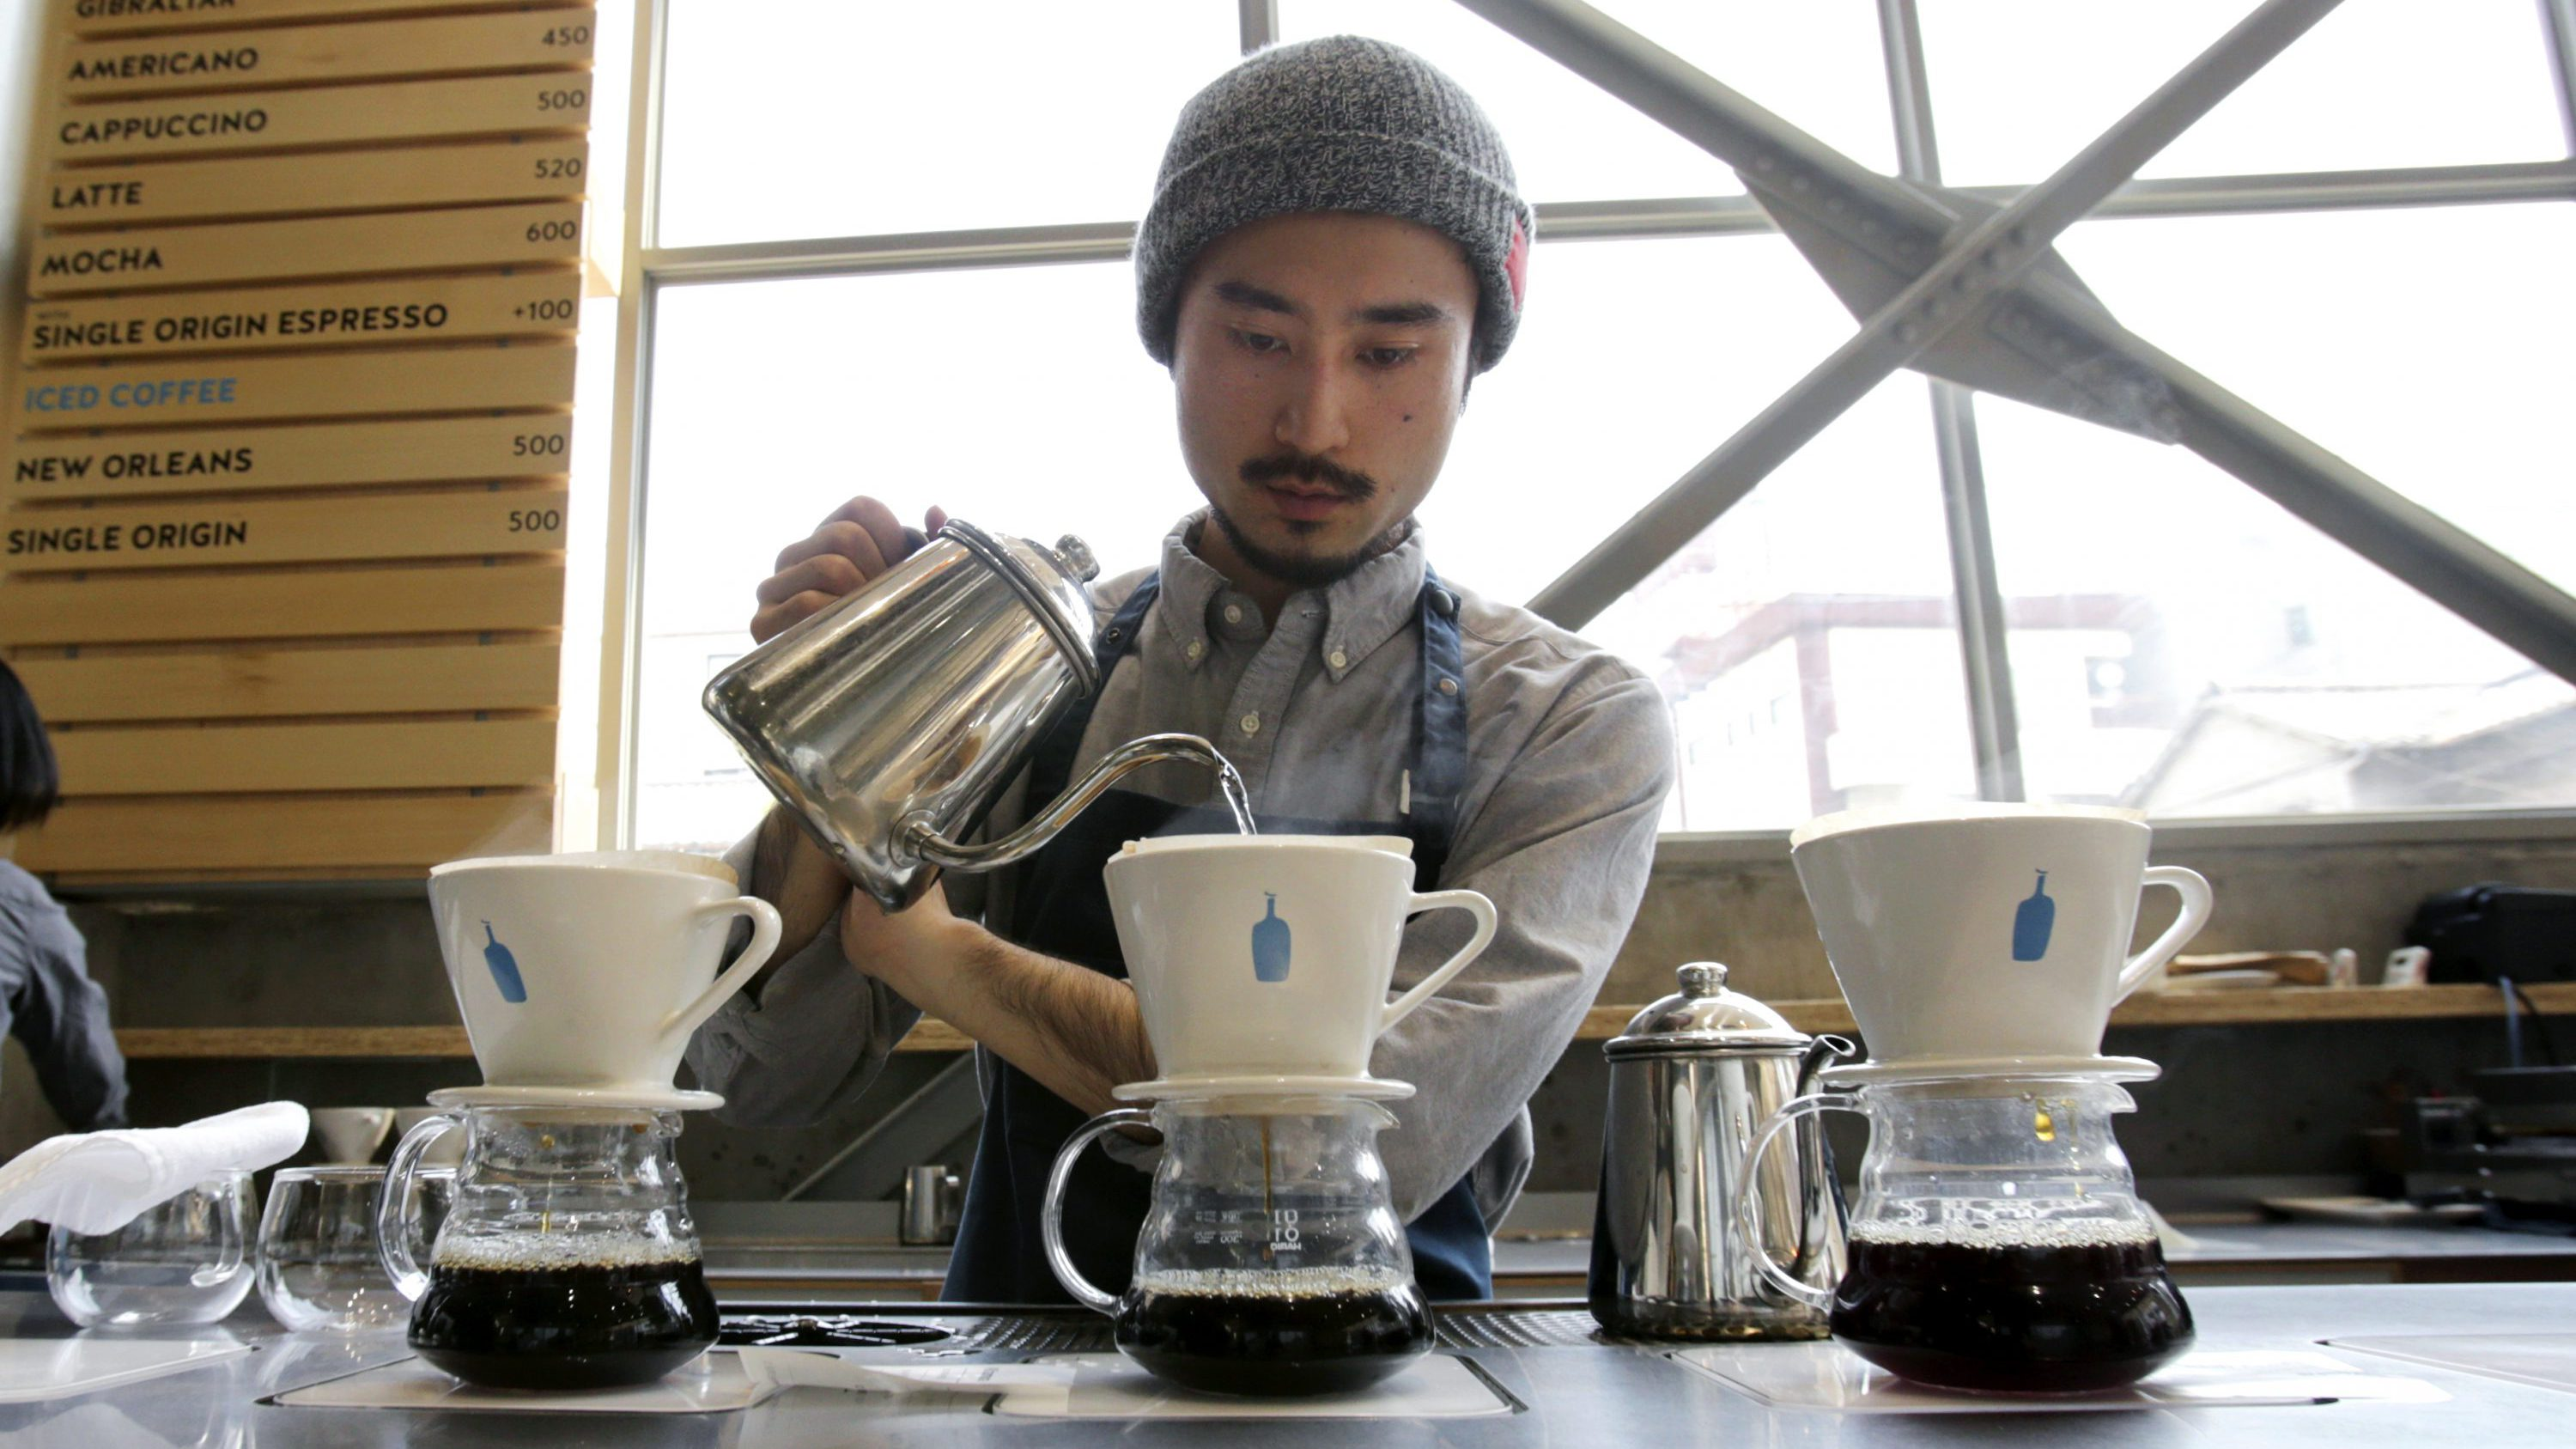 In this April 27, 2015 photo, a barista brews coffee at a Blue Bottle Coffee shop in Tokyo. Japan, famous for green tea, is welcoming artisanal American coffee roaster Blue Bottle with long lines that have at times meant a four-hour wait for a cup.